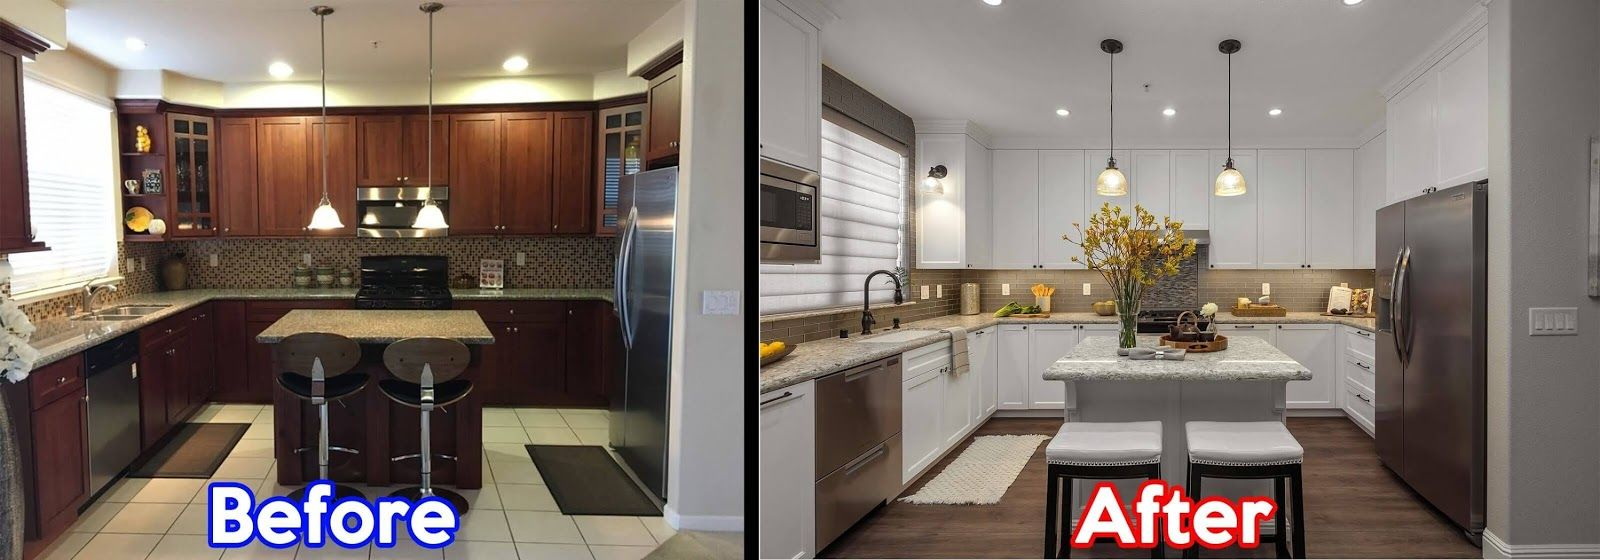 Before And After Open Townhouse Kitchen Remodel In San Francisco